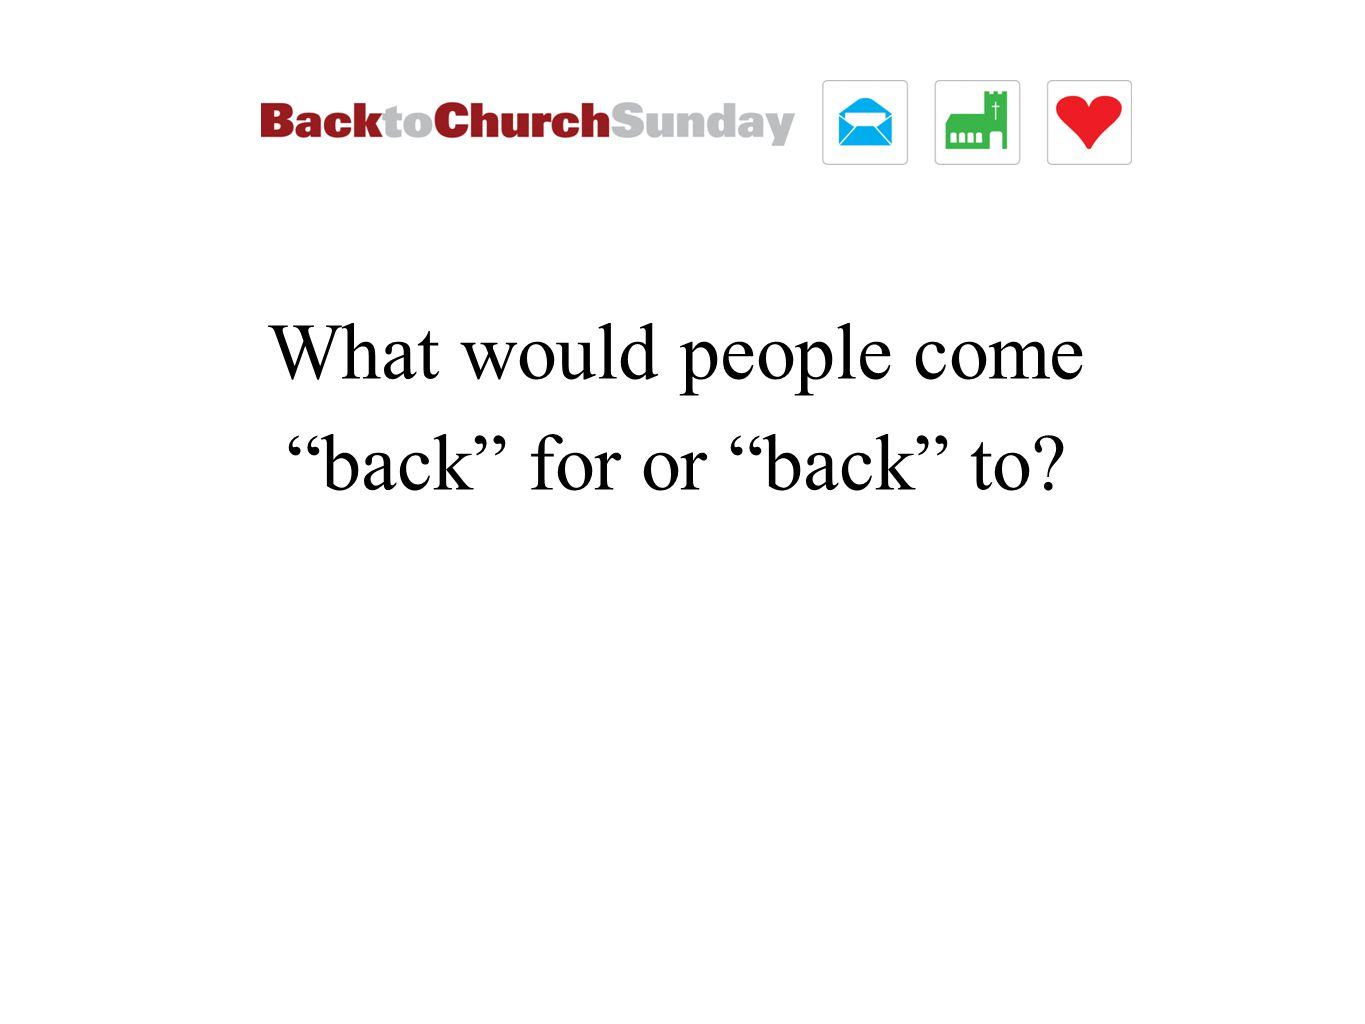 What would people come back for or back to?